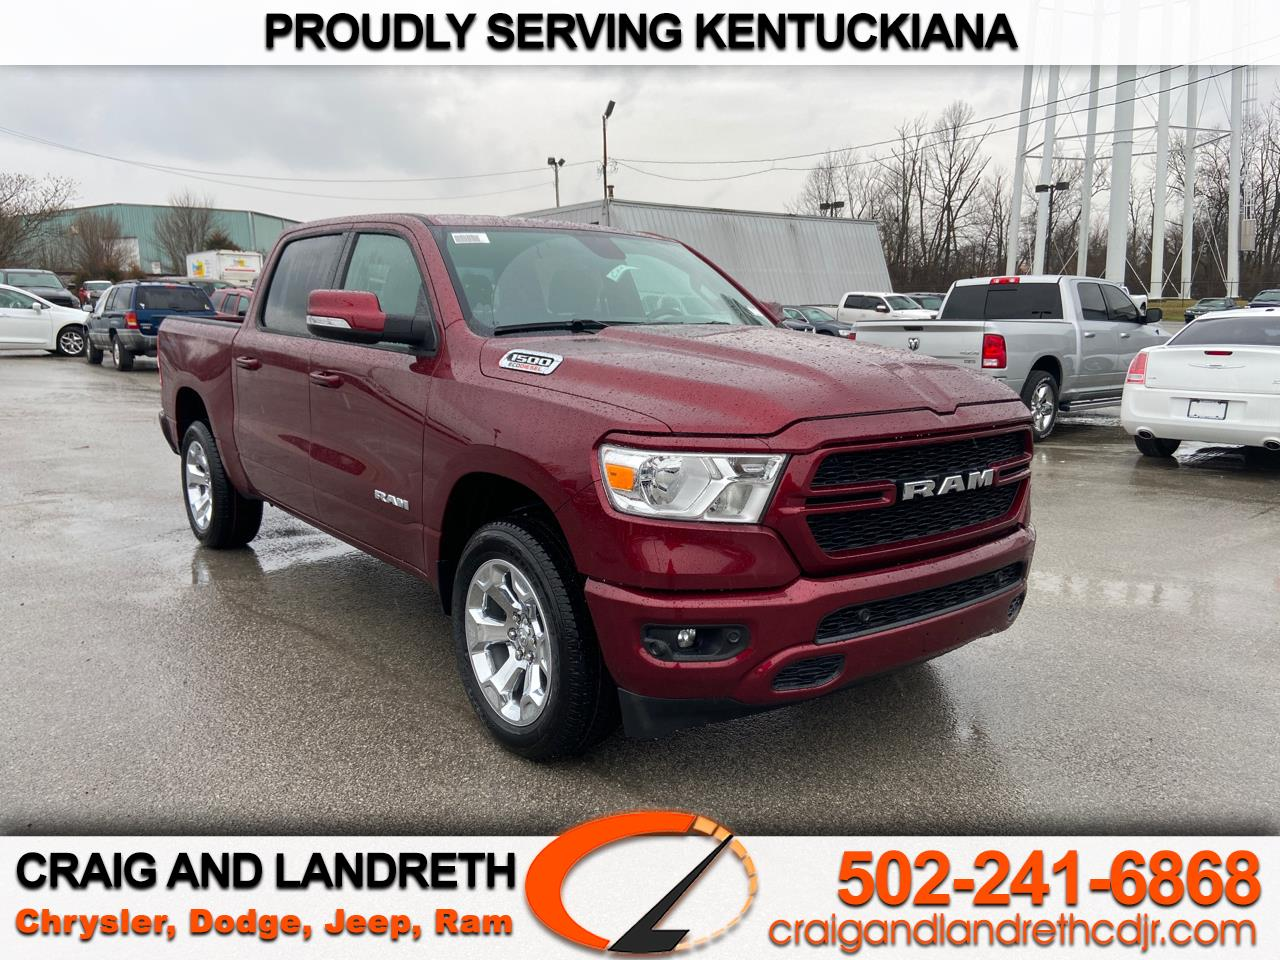 New 2020 RAM 1500 BIG HORN 4X4 CREW CAB 5 ft7